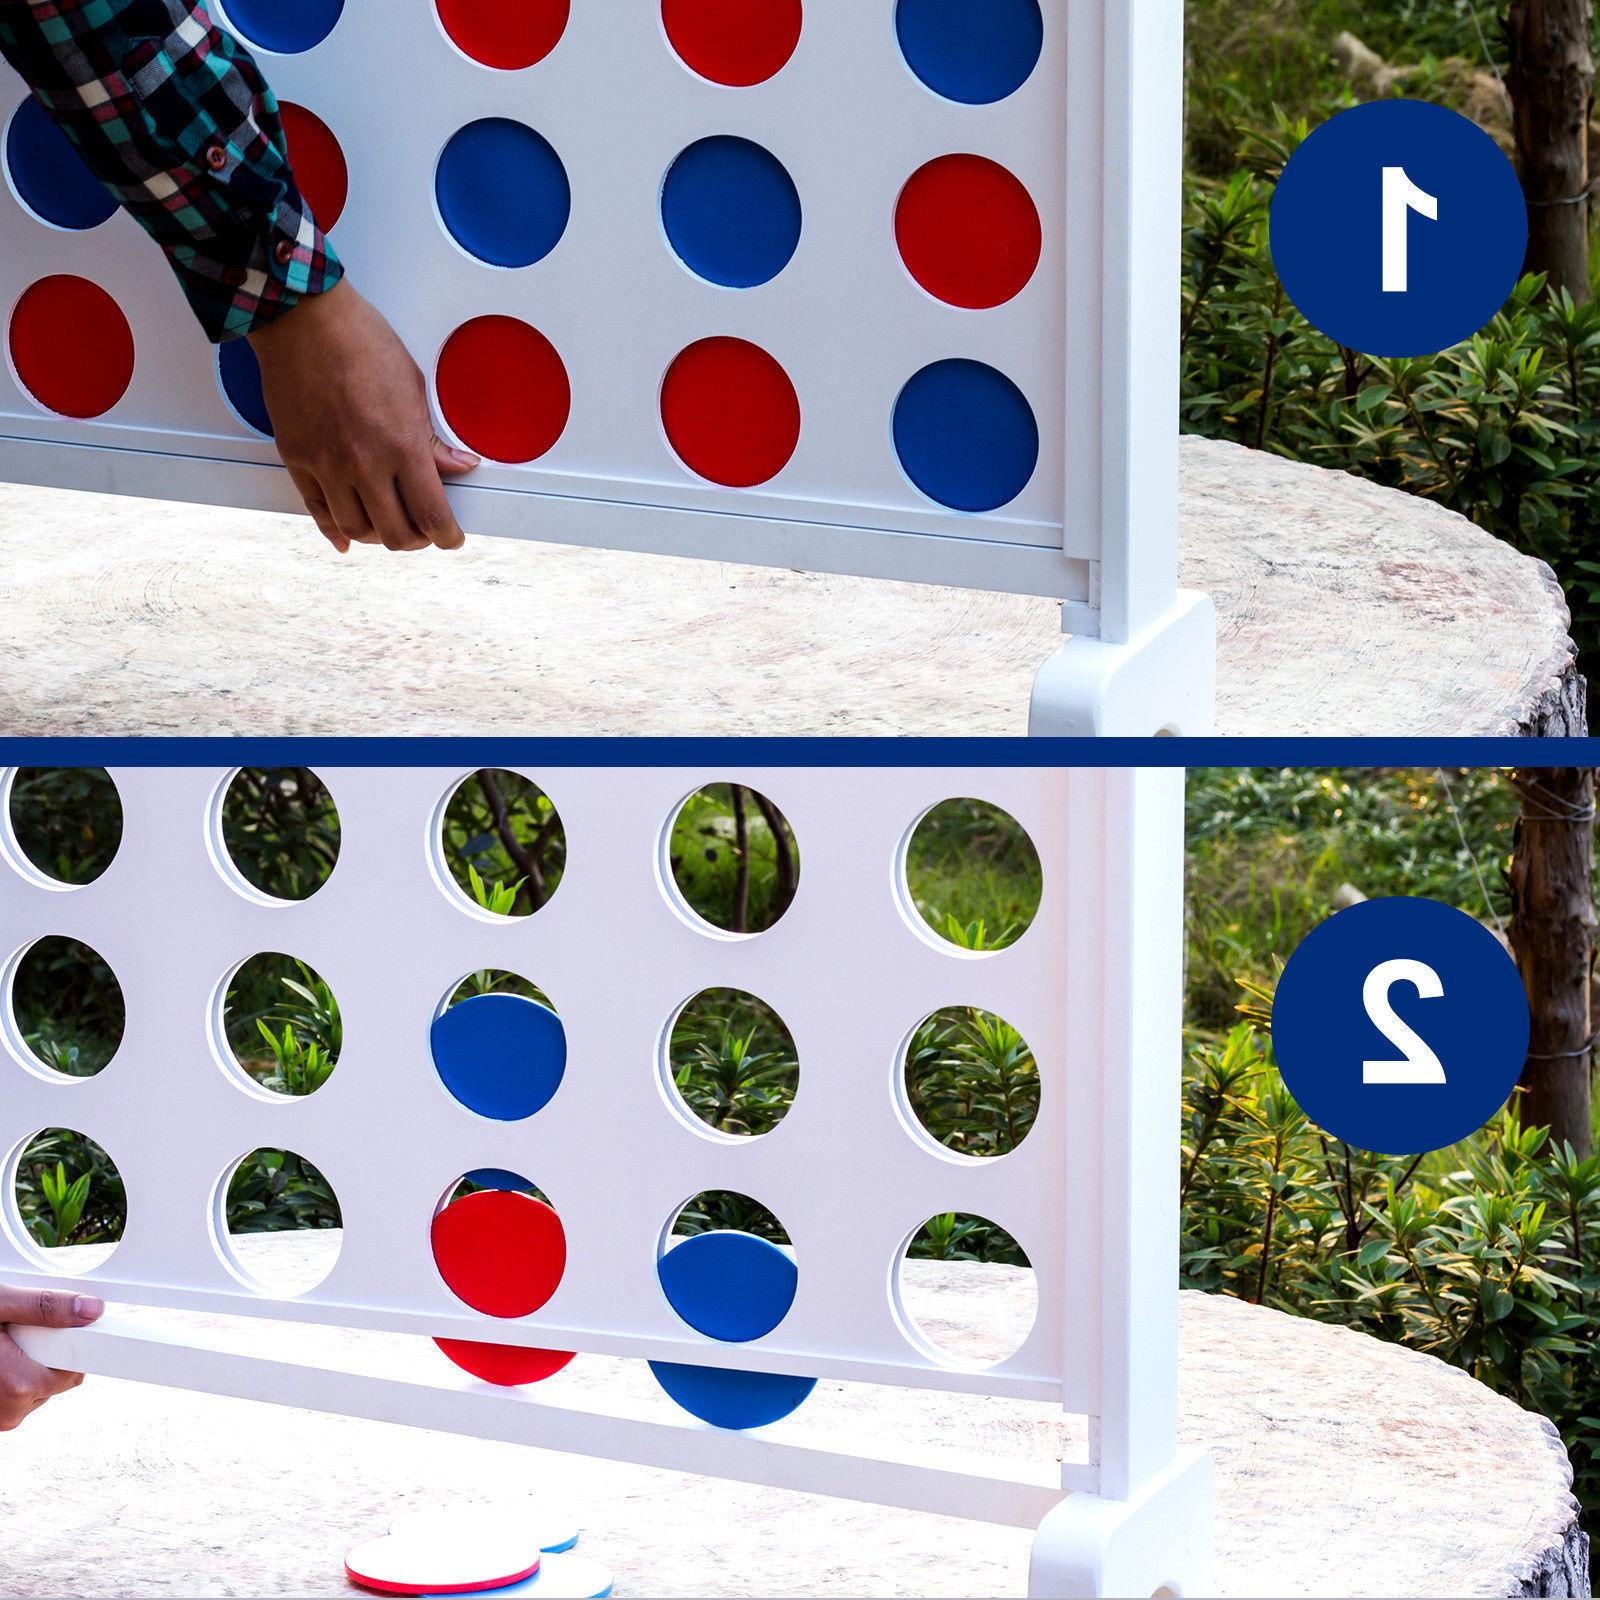 Giant Connect 4 In A Row Jumbo Yard Game Adults Wood